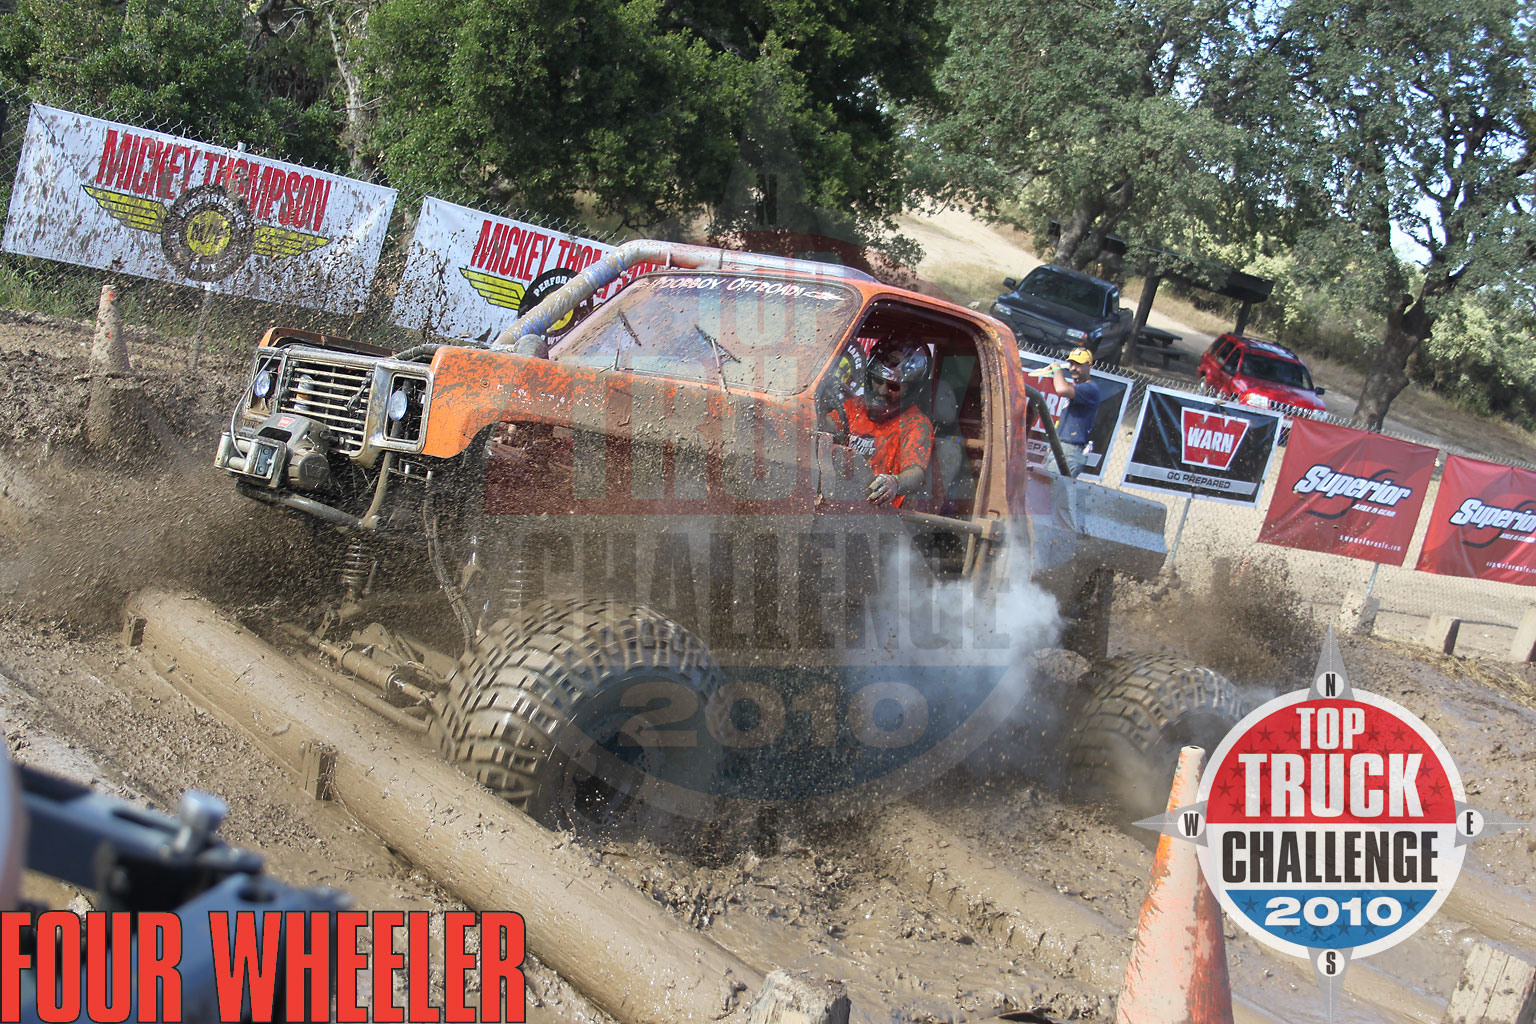 2010 Top Truck Challenge Frame Twister Jason Gray 1975 Chevy Blazer